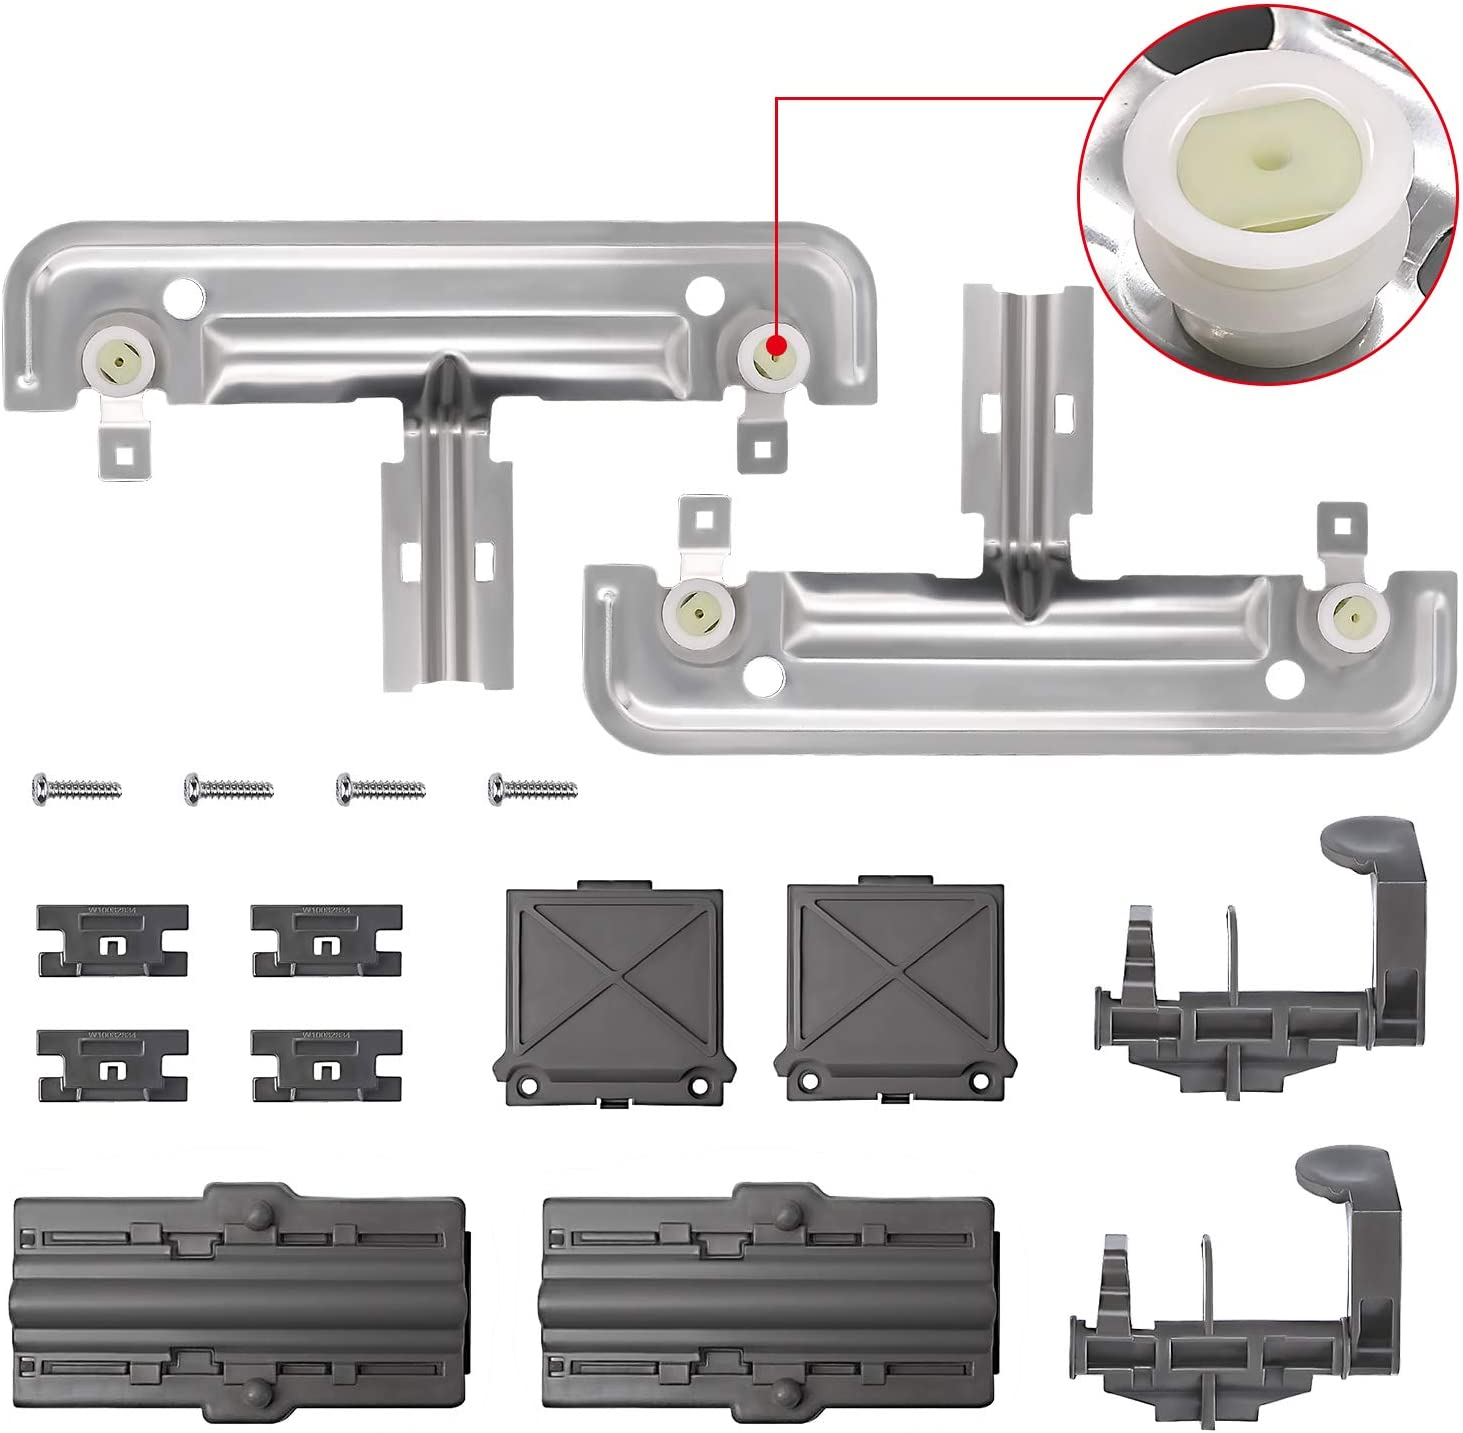 Primeswift W10712394 Dishwasher Dish Rack Adjuster Kit Replacement for Kenmore Whirlpool W10238418 W10253546 W10350376